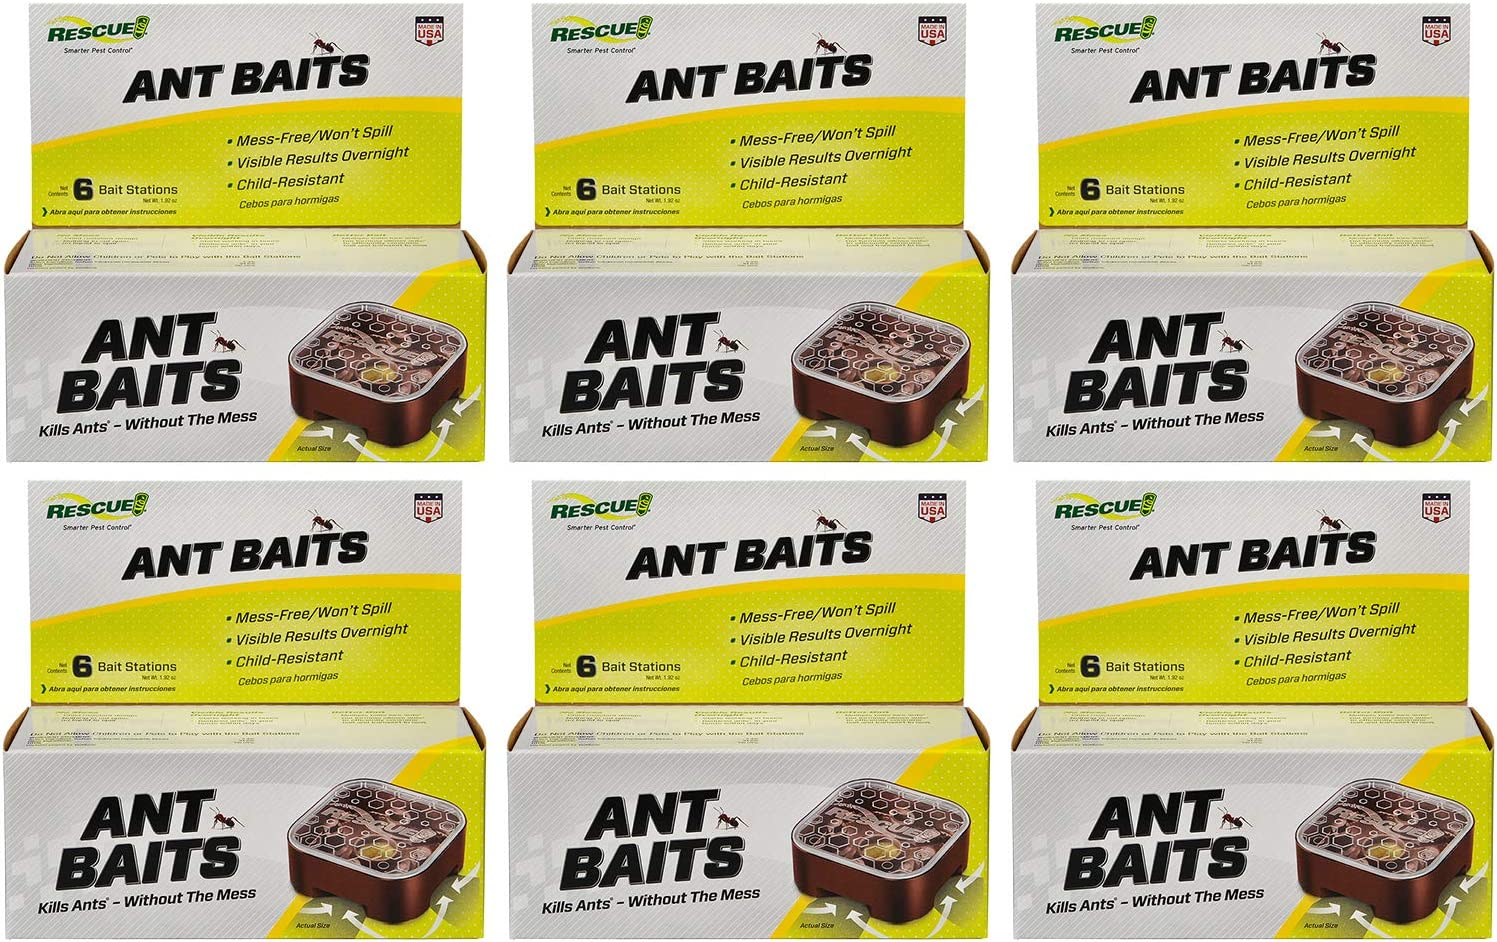 RESCUE Ant Baits 6-Count Indoor Use 36 Bait store Manufacturer OFFicial shop Stations Pack 6 -